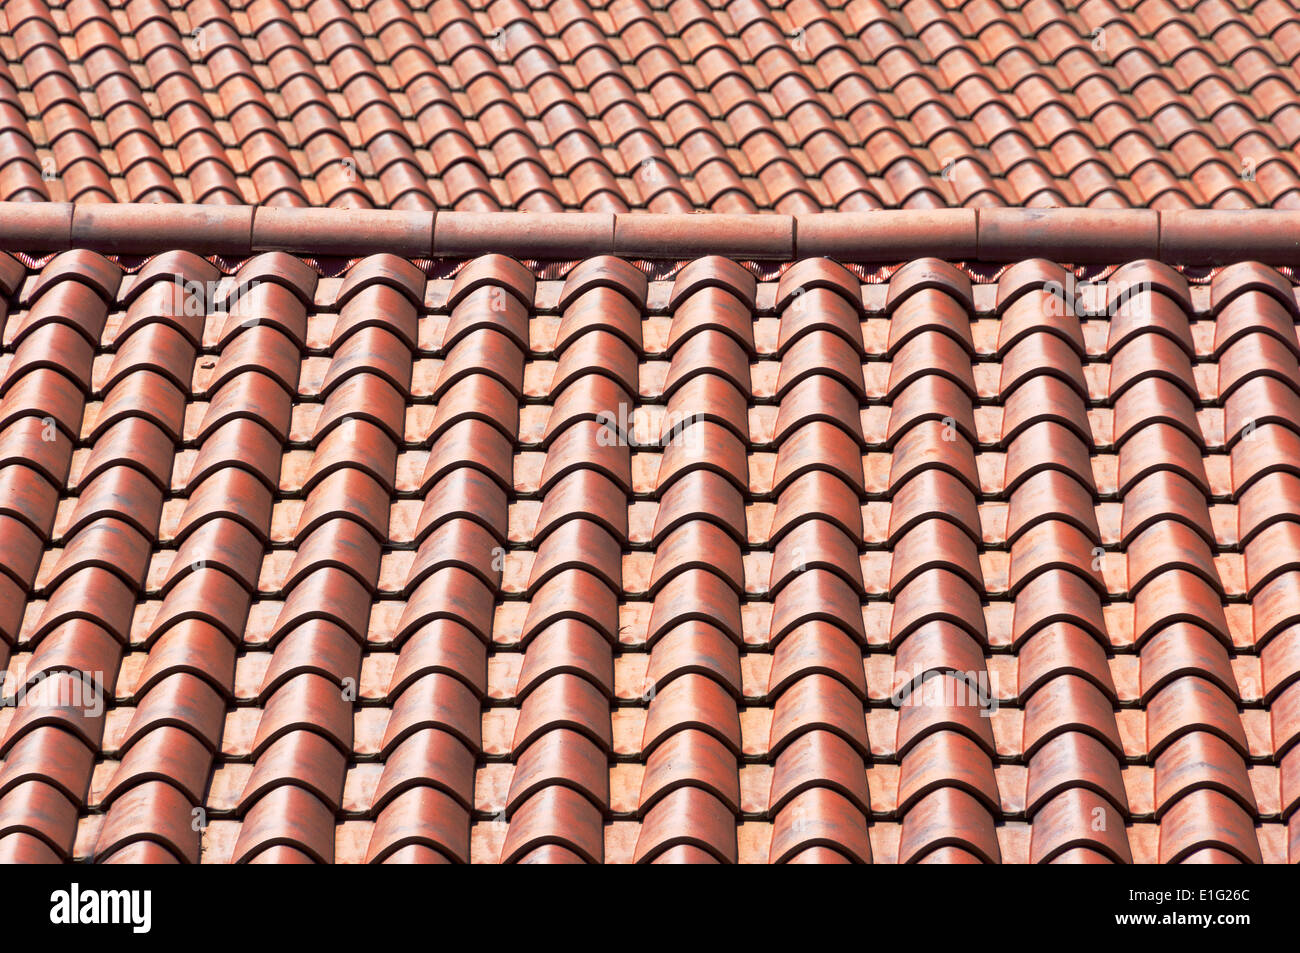 background of new roof tiles Stock Photo